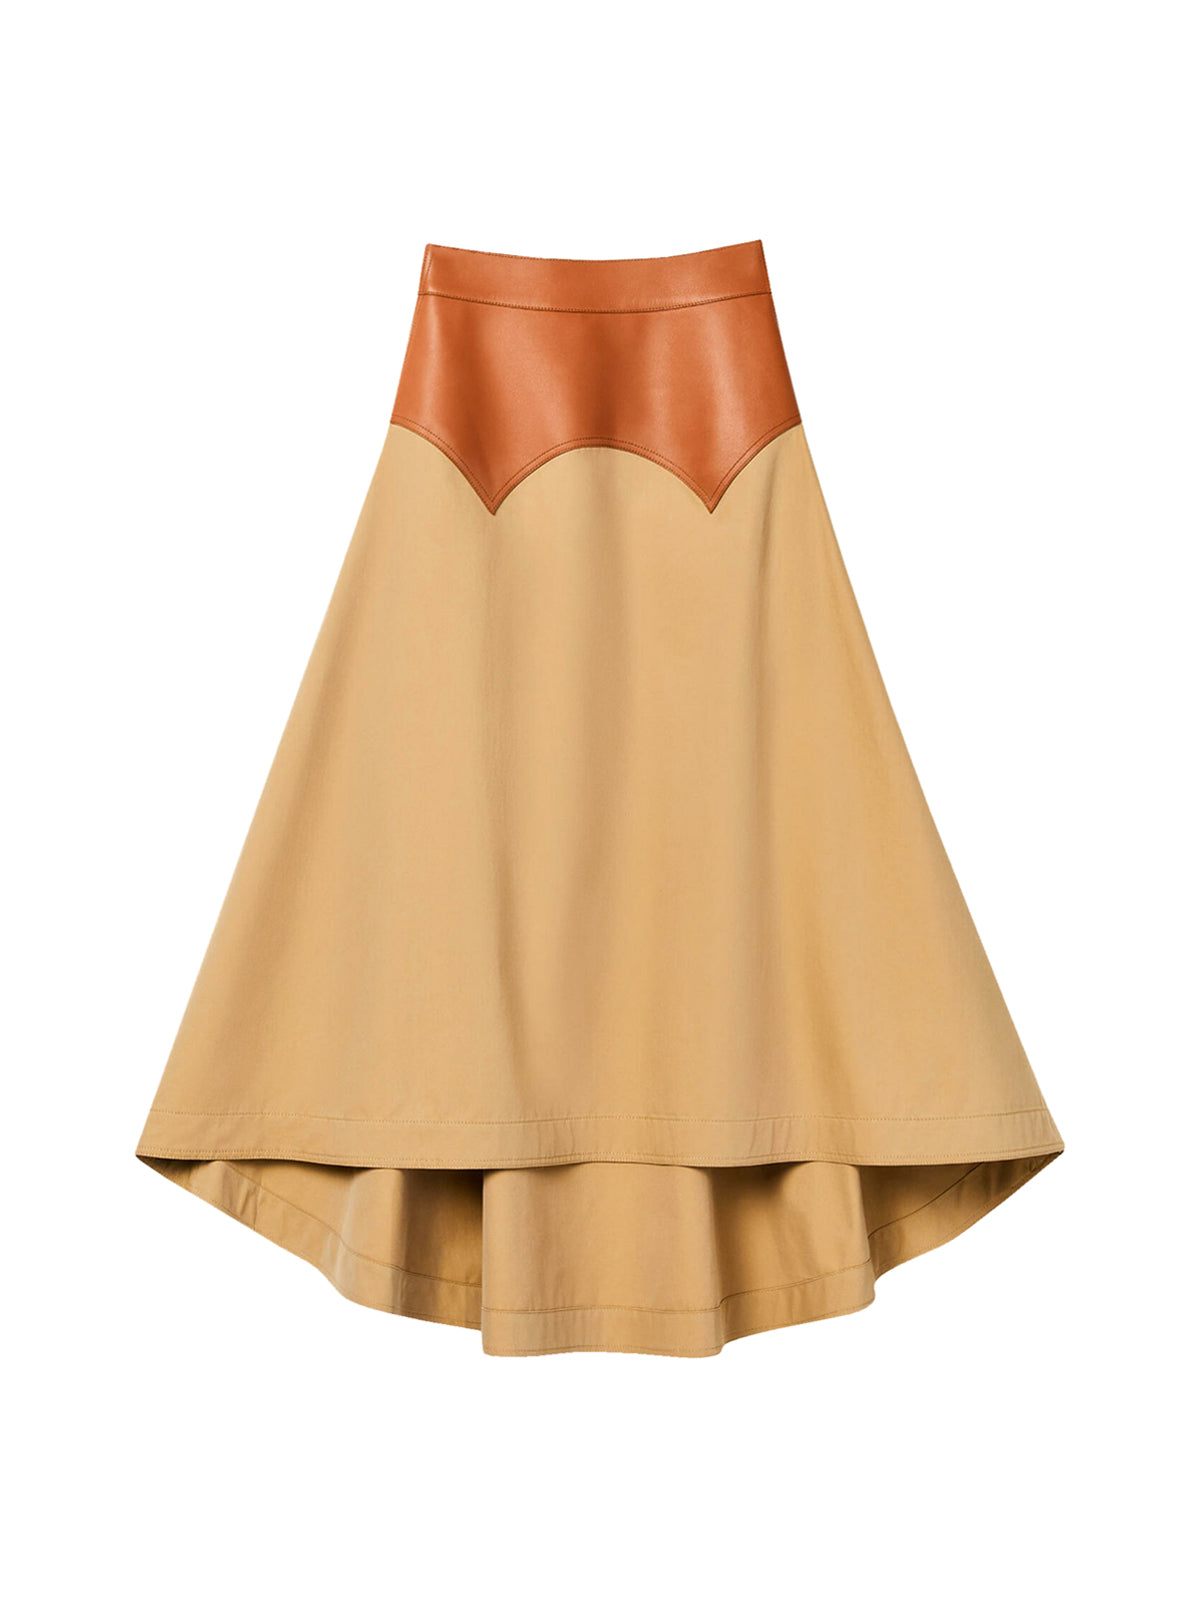 Long obi skirt in calfskin and textile